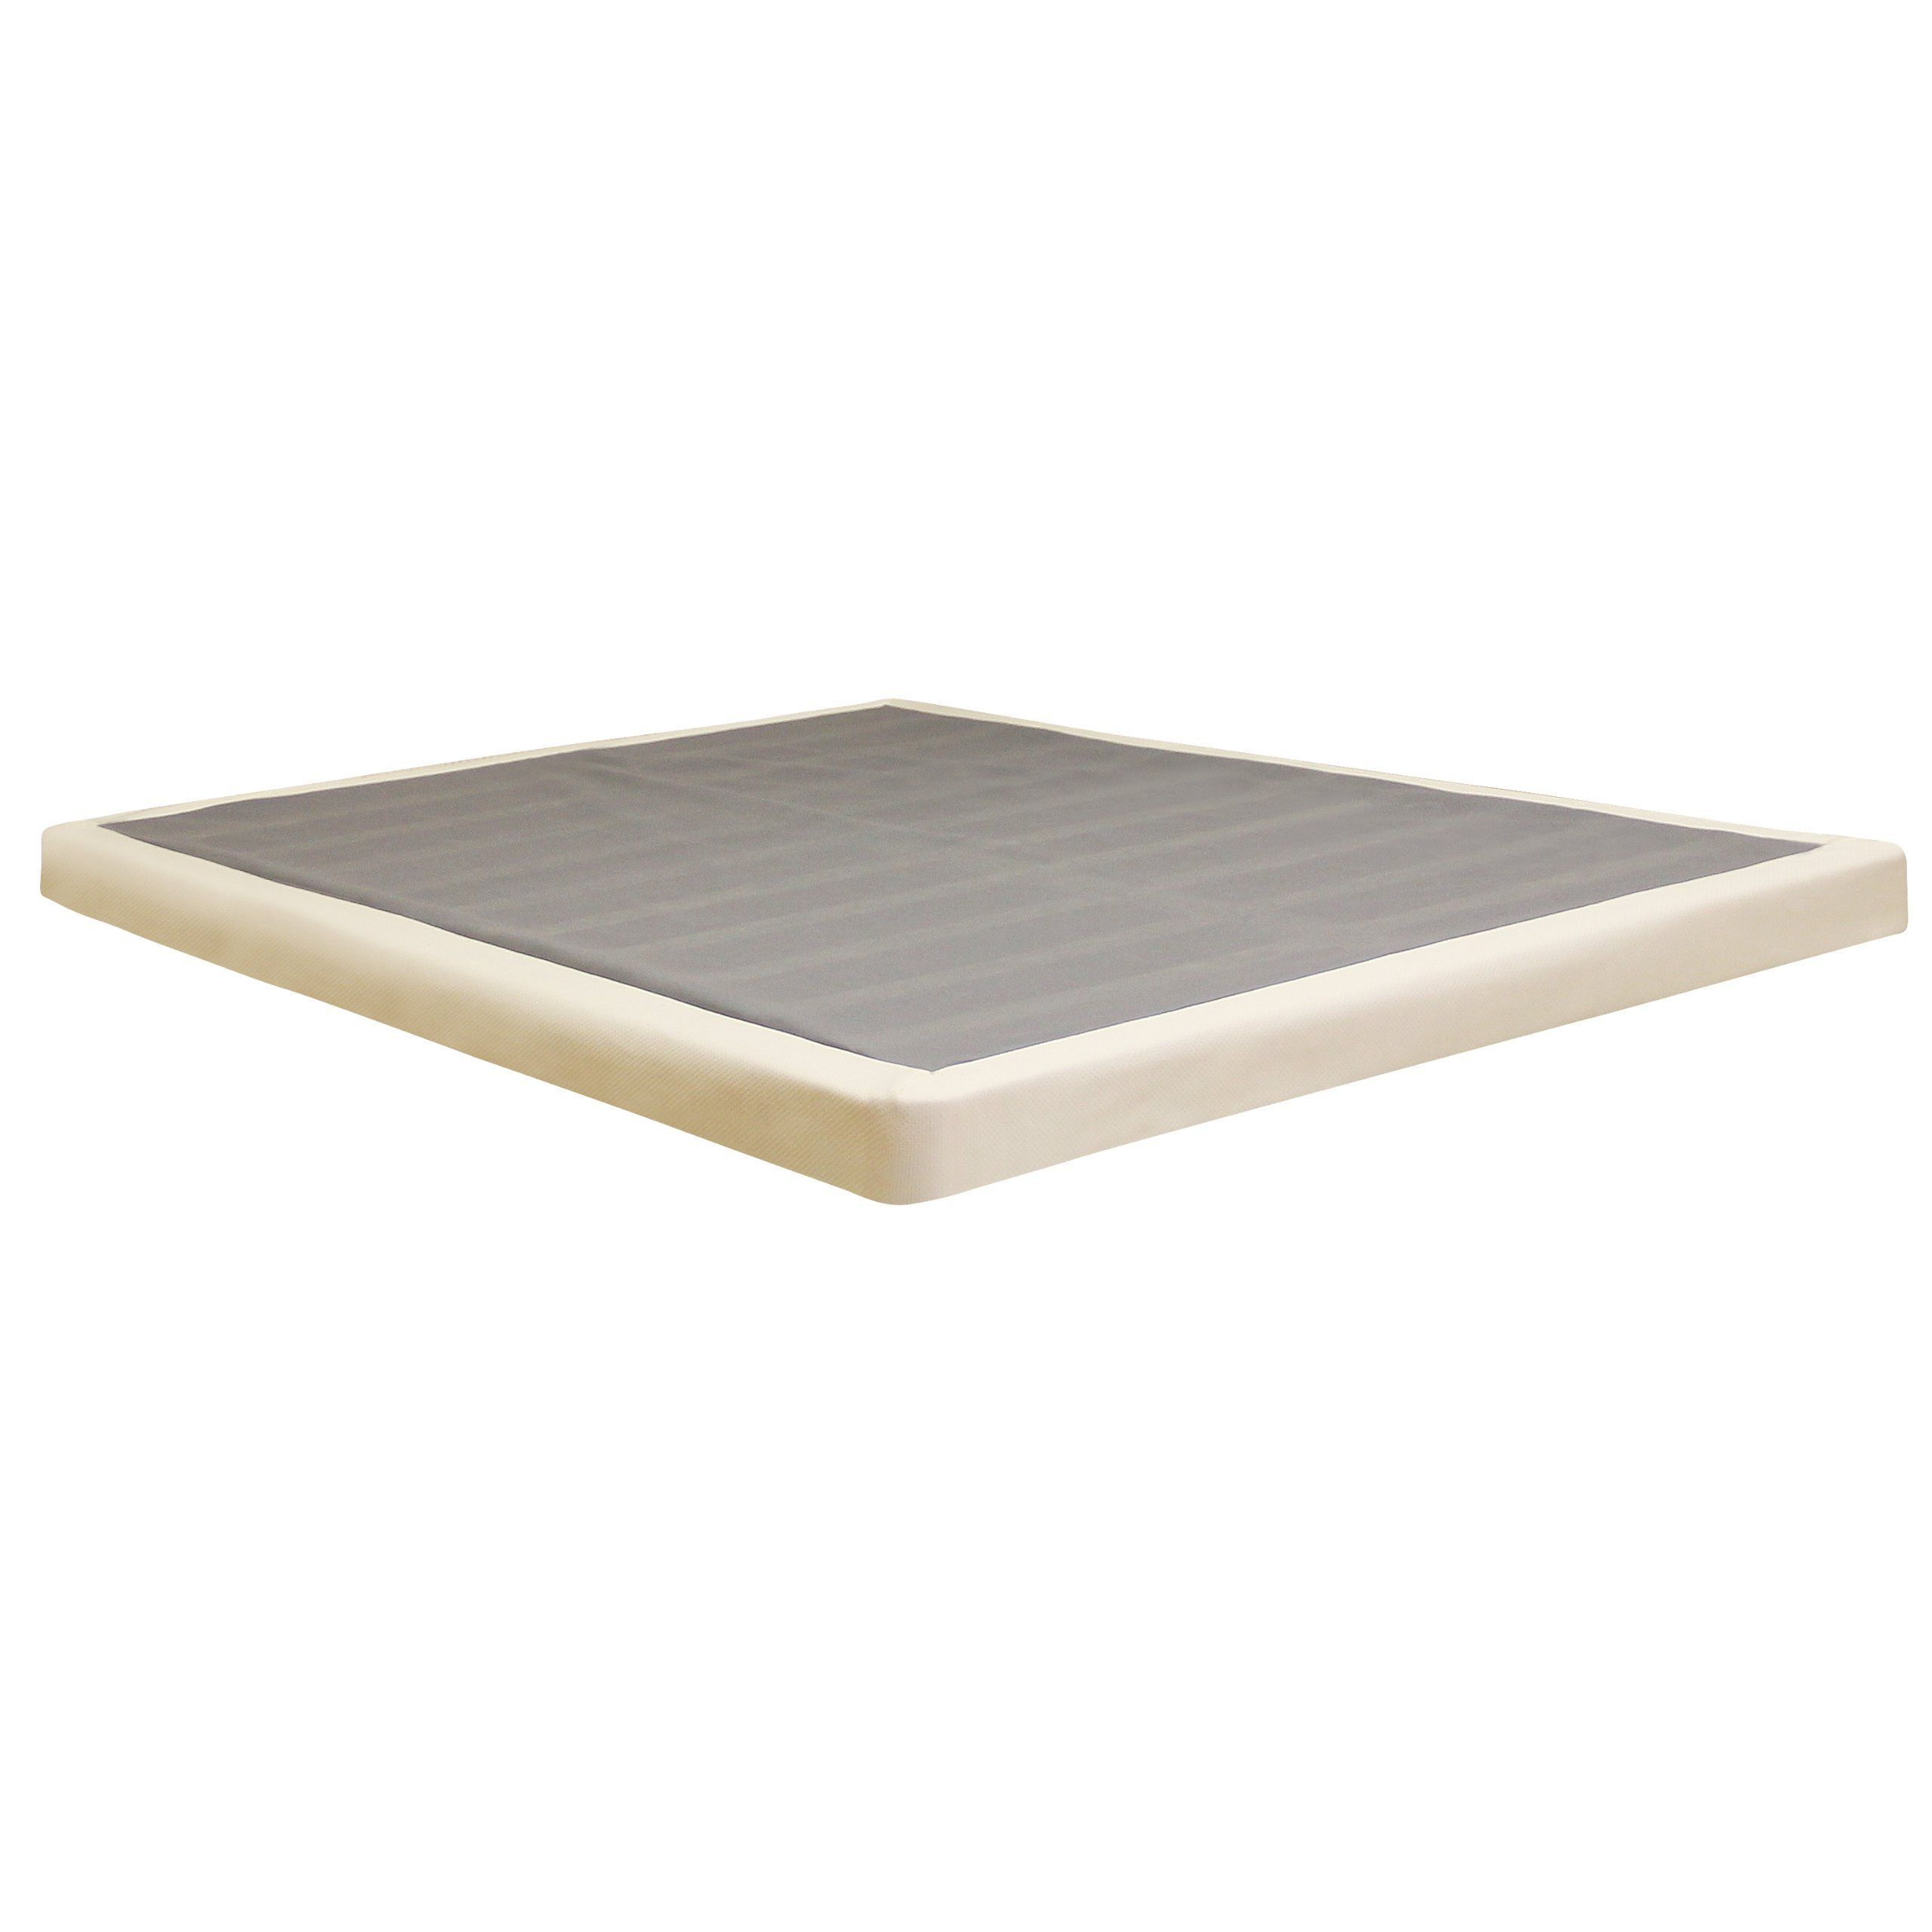 Classic Brands Low Profile Foundation Box Spring, 4 Inch